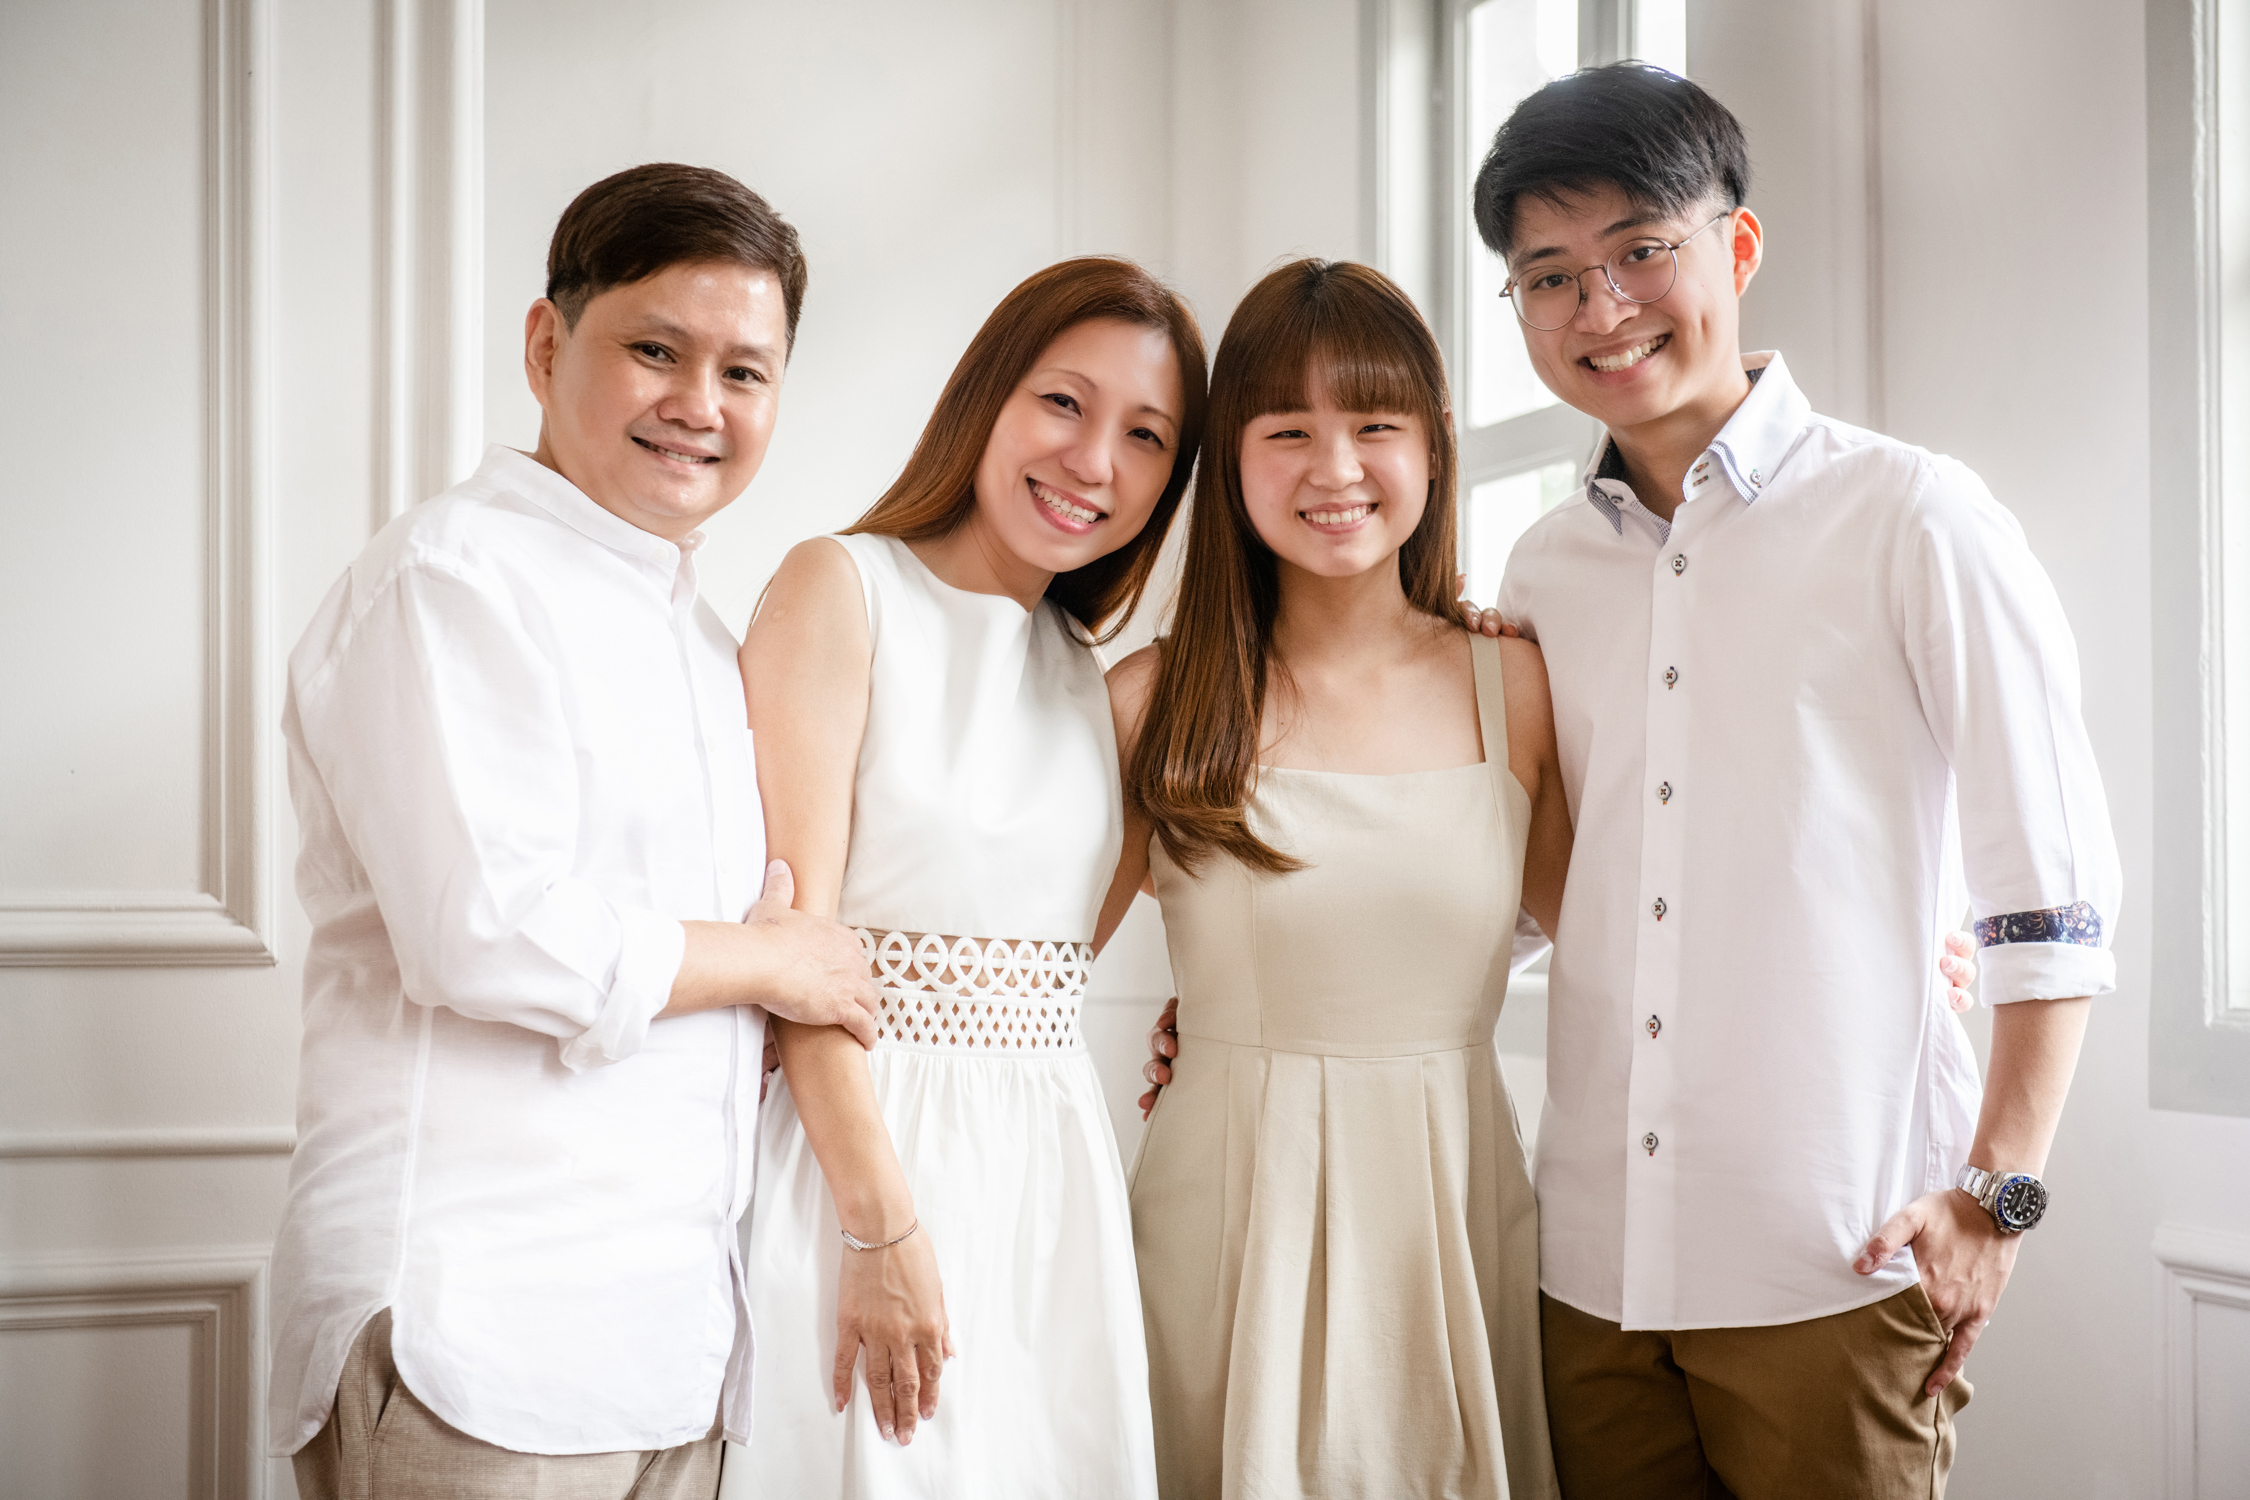 Family of four dressed in white, standing in front of a white wall